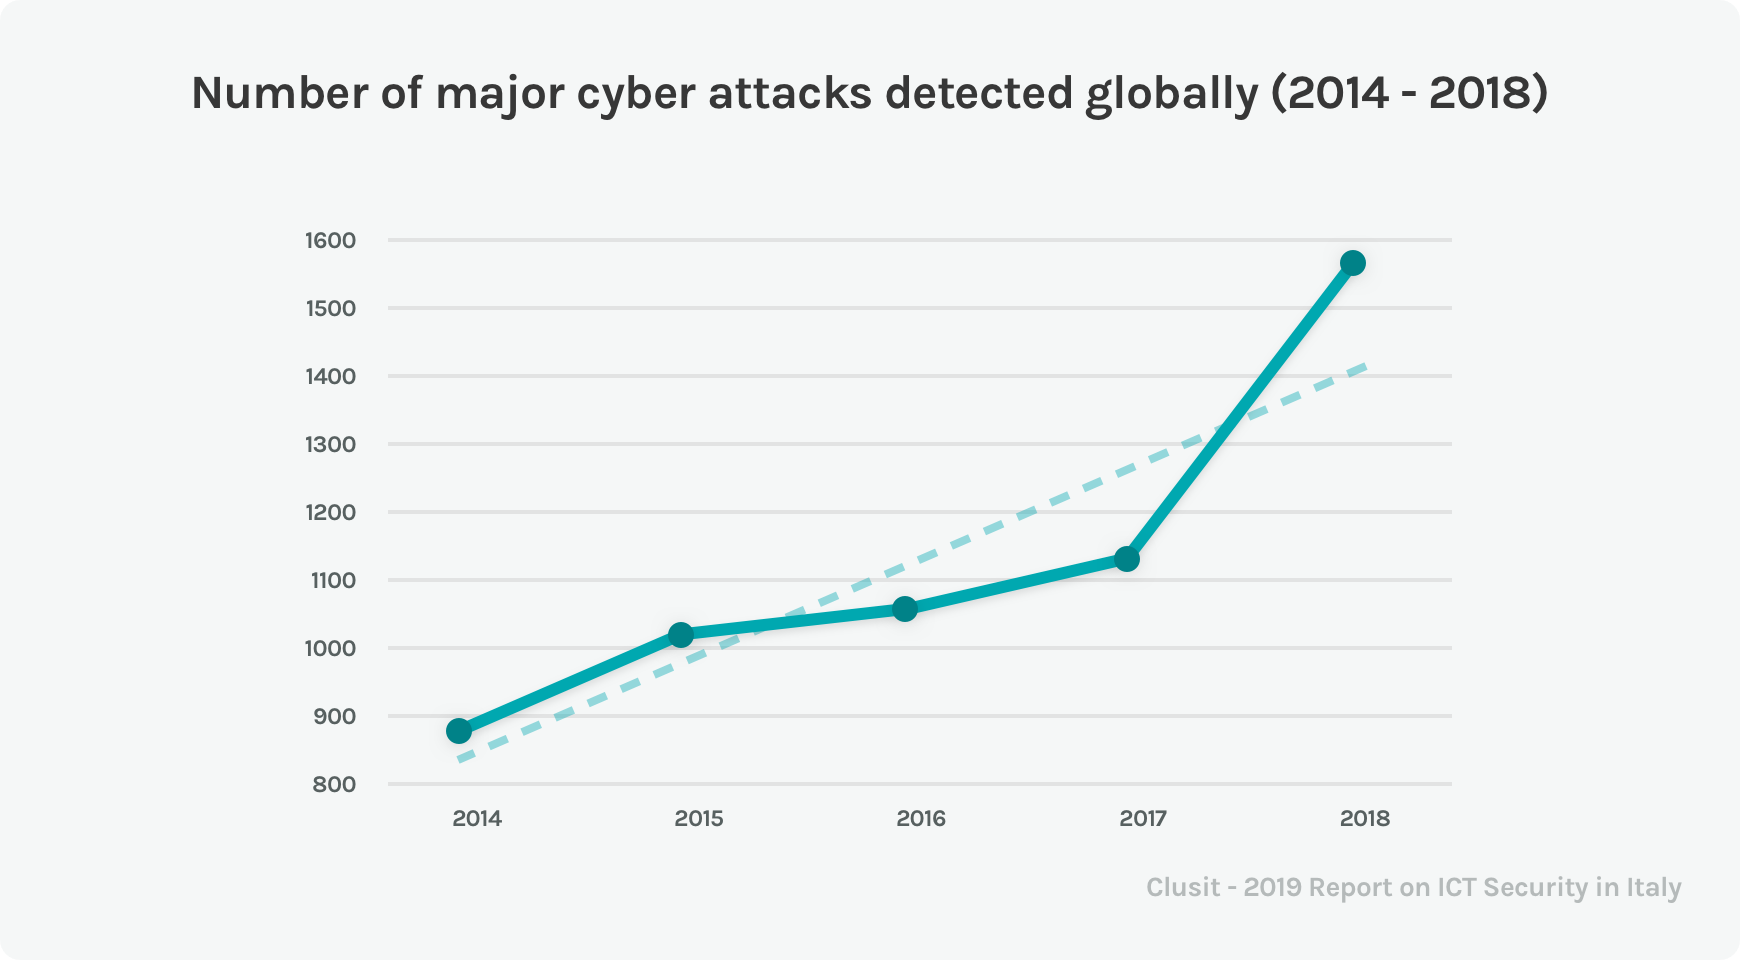 Chart of number of major cyber attacks detected globally